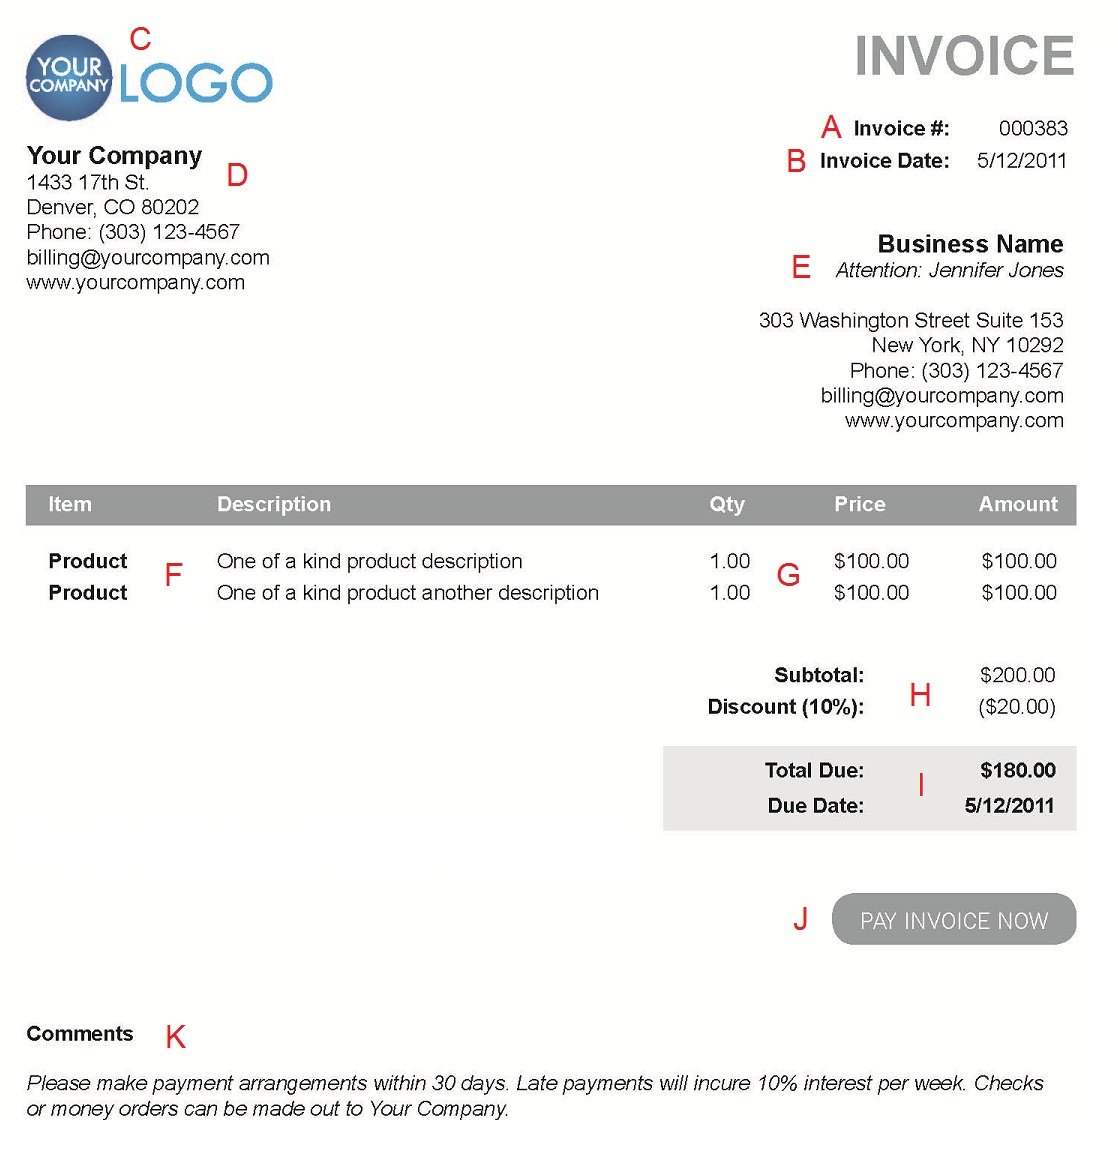 Centralasianshepherdus  Winning The  Different Sections Of An Electronic Payment Invoice With Goodlooking A  With Comely Xero Invoicing Also Consignment Invoice In Addition Invoices Templates Free And New Car Invoice Pricing As Well As Invoice Price Of Car Additionally Landscape Invoice Template From Paysimplecom With Centralasianshepherdus  Goodlooking The  Different Sections Of An Electronic Payment Invoice With Comely A  And Winning Xero Invoicing Also Consignment Invoice In Addition Invoices Templates Free From Paysimplecom